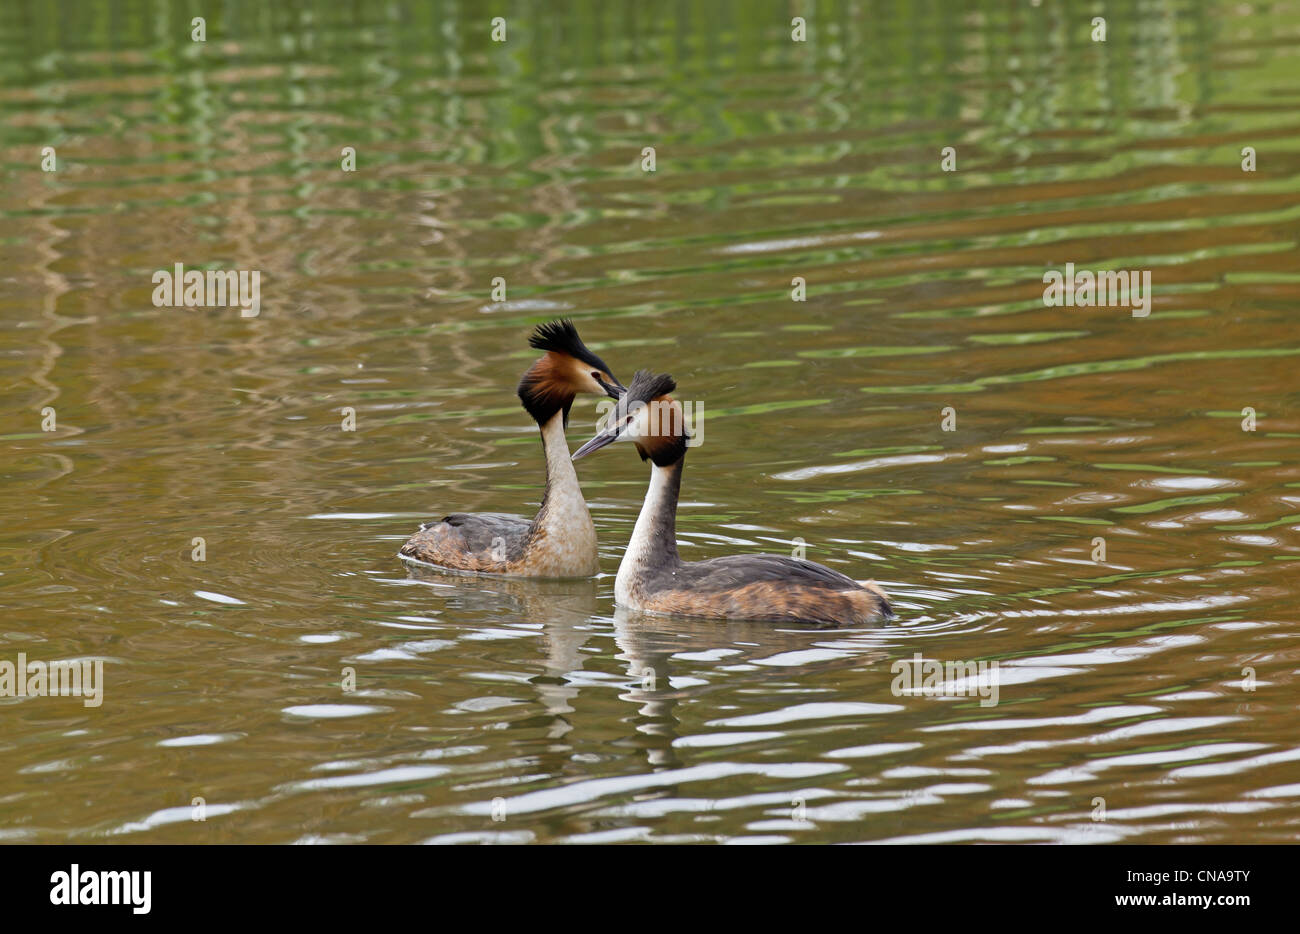 A pair of great crested grebes on a lake ( Podiceps cristatus ) - Stock Image